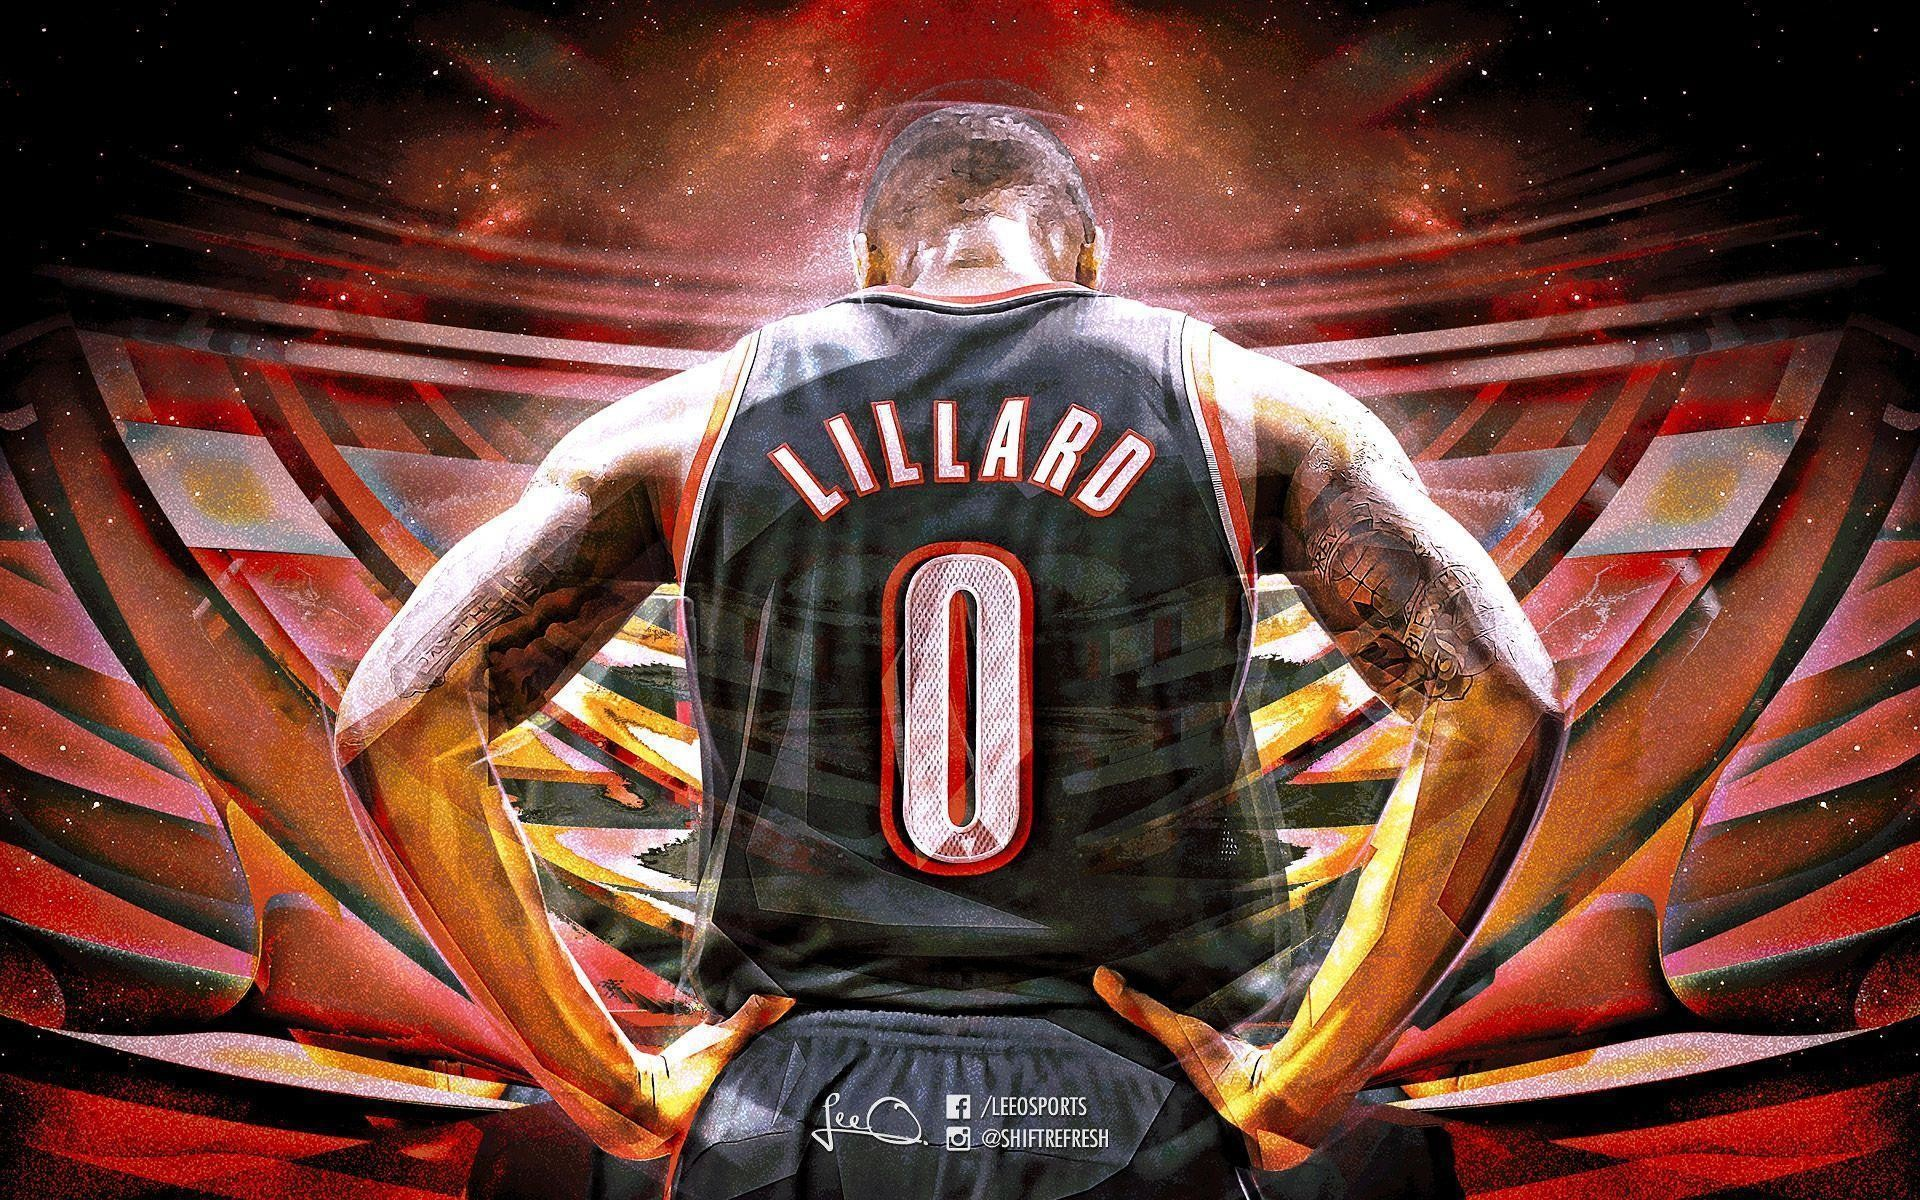 1920x1200 Portland Trailblazers Wallpapers | Basketball Wallpapers at .